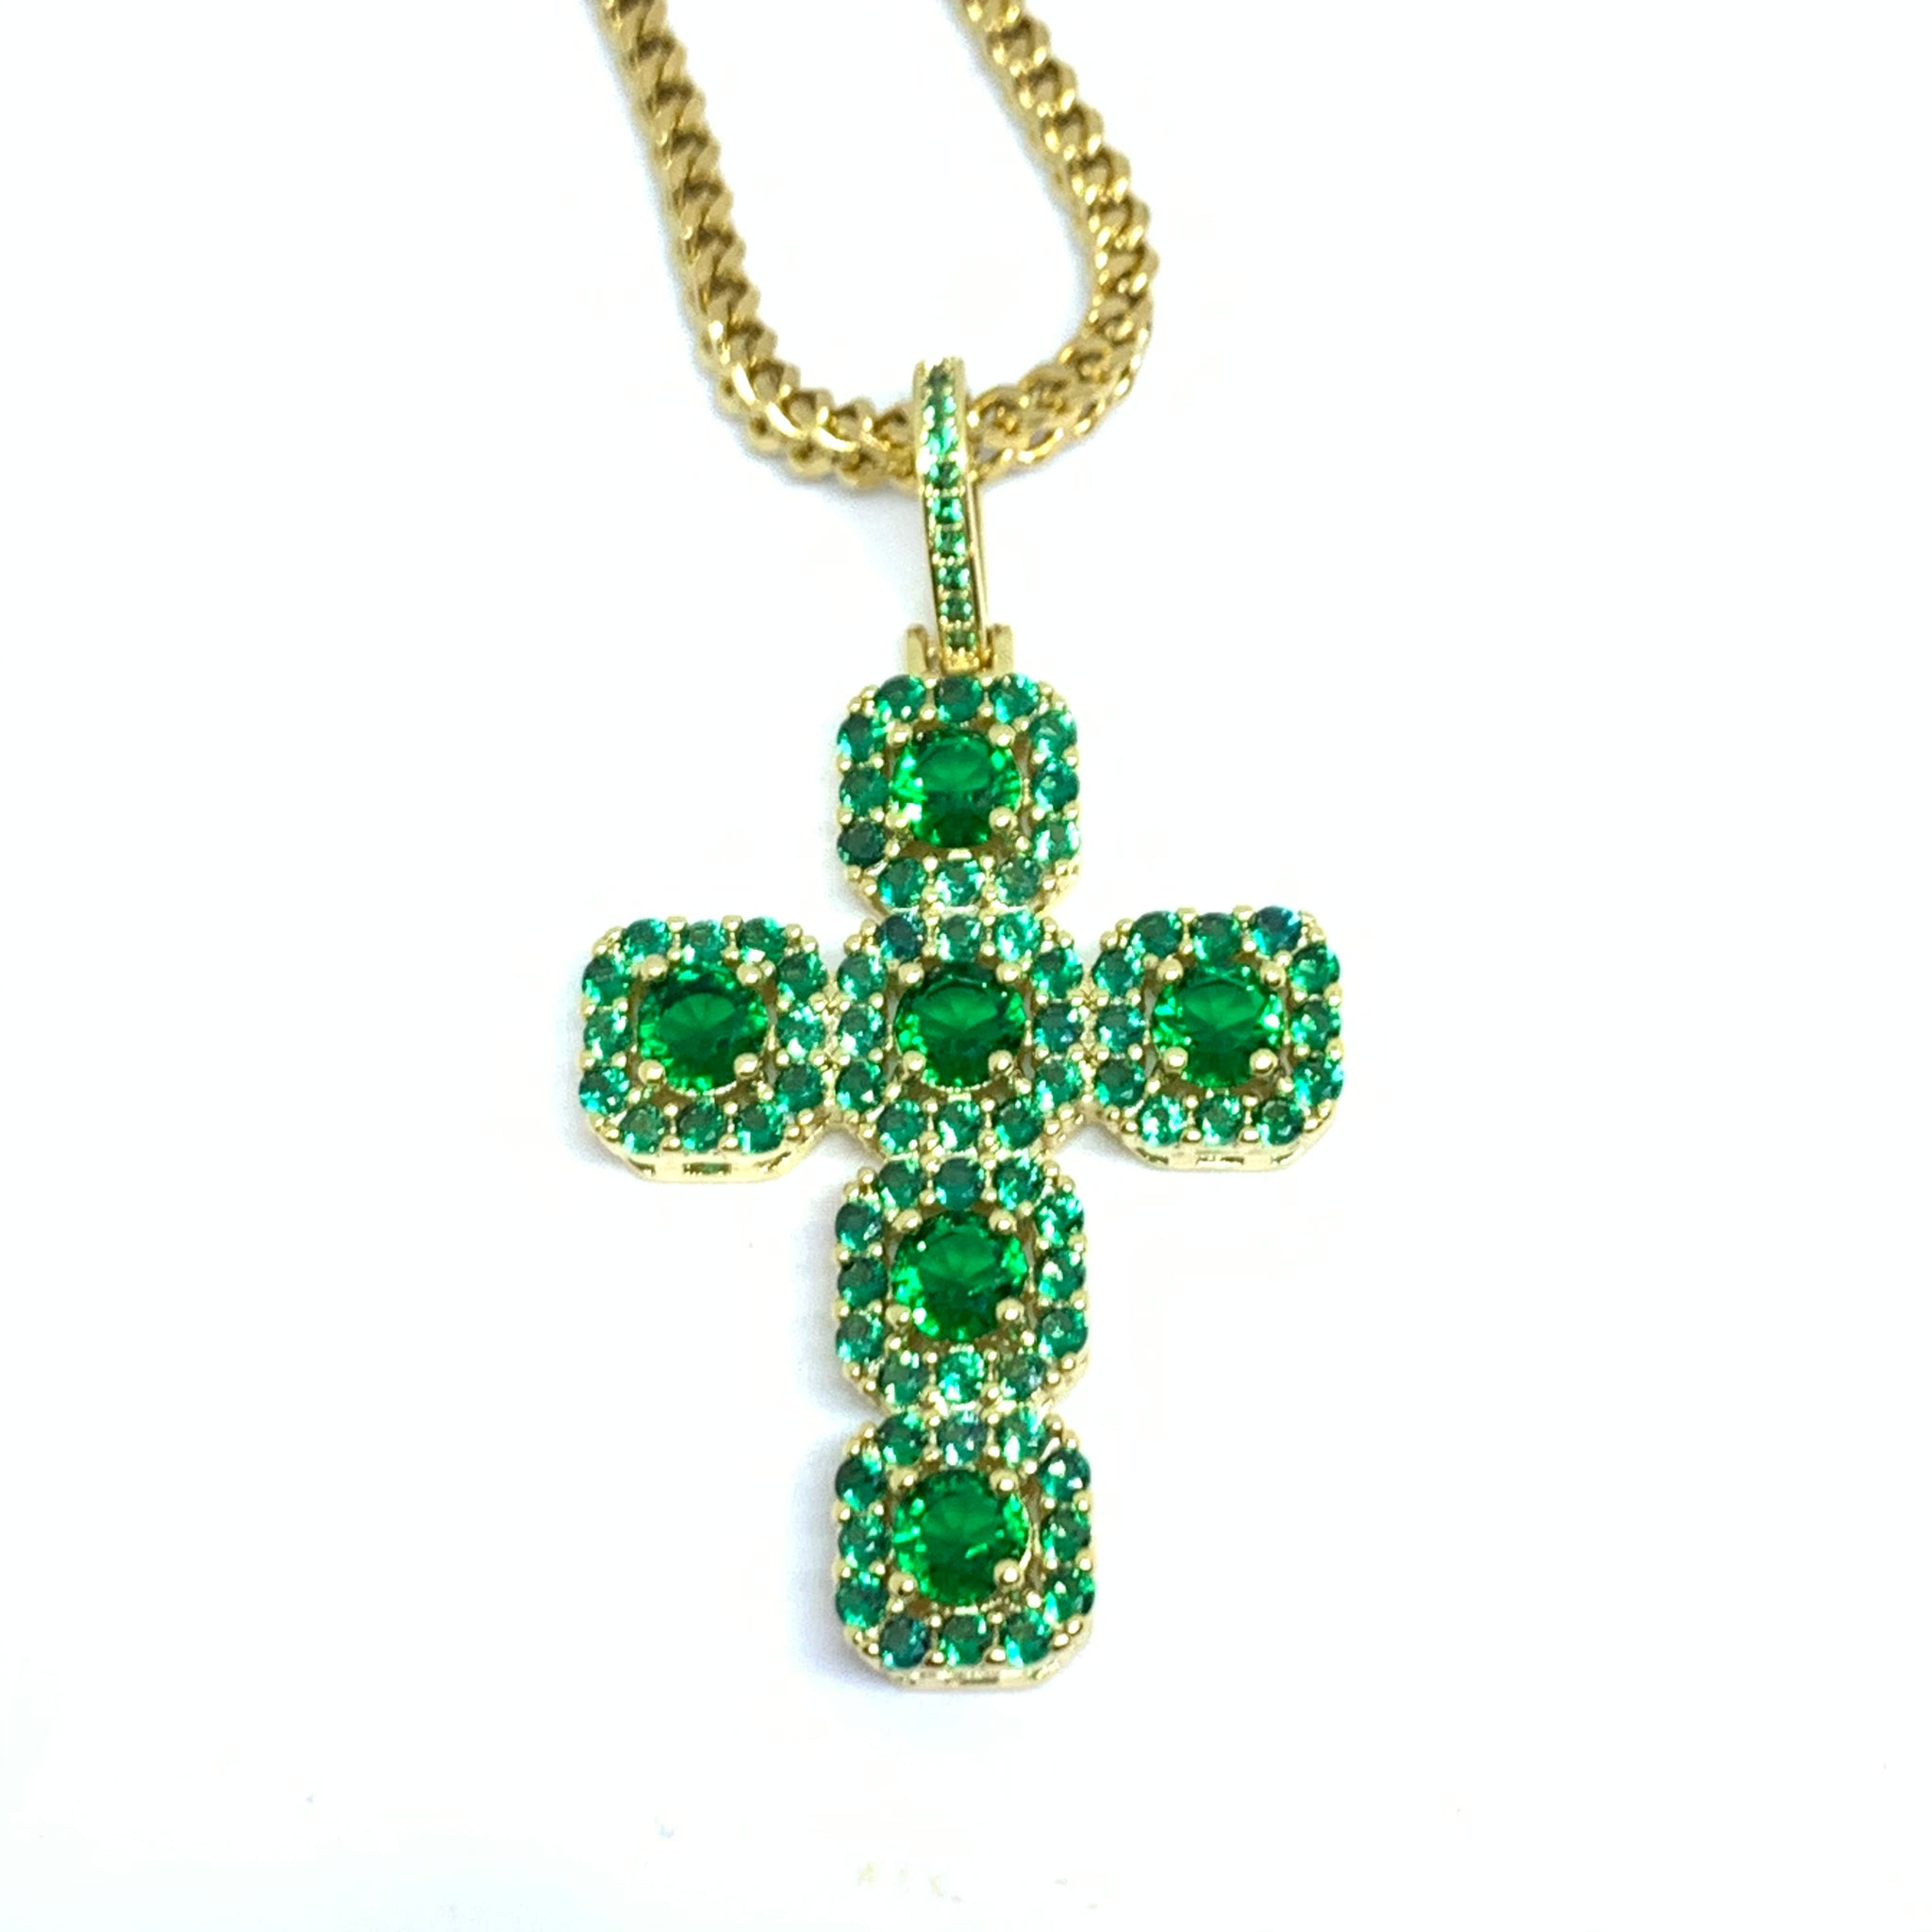 Iced Out Cross Necklace Gold Green Stone